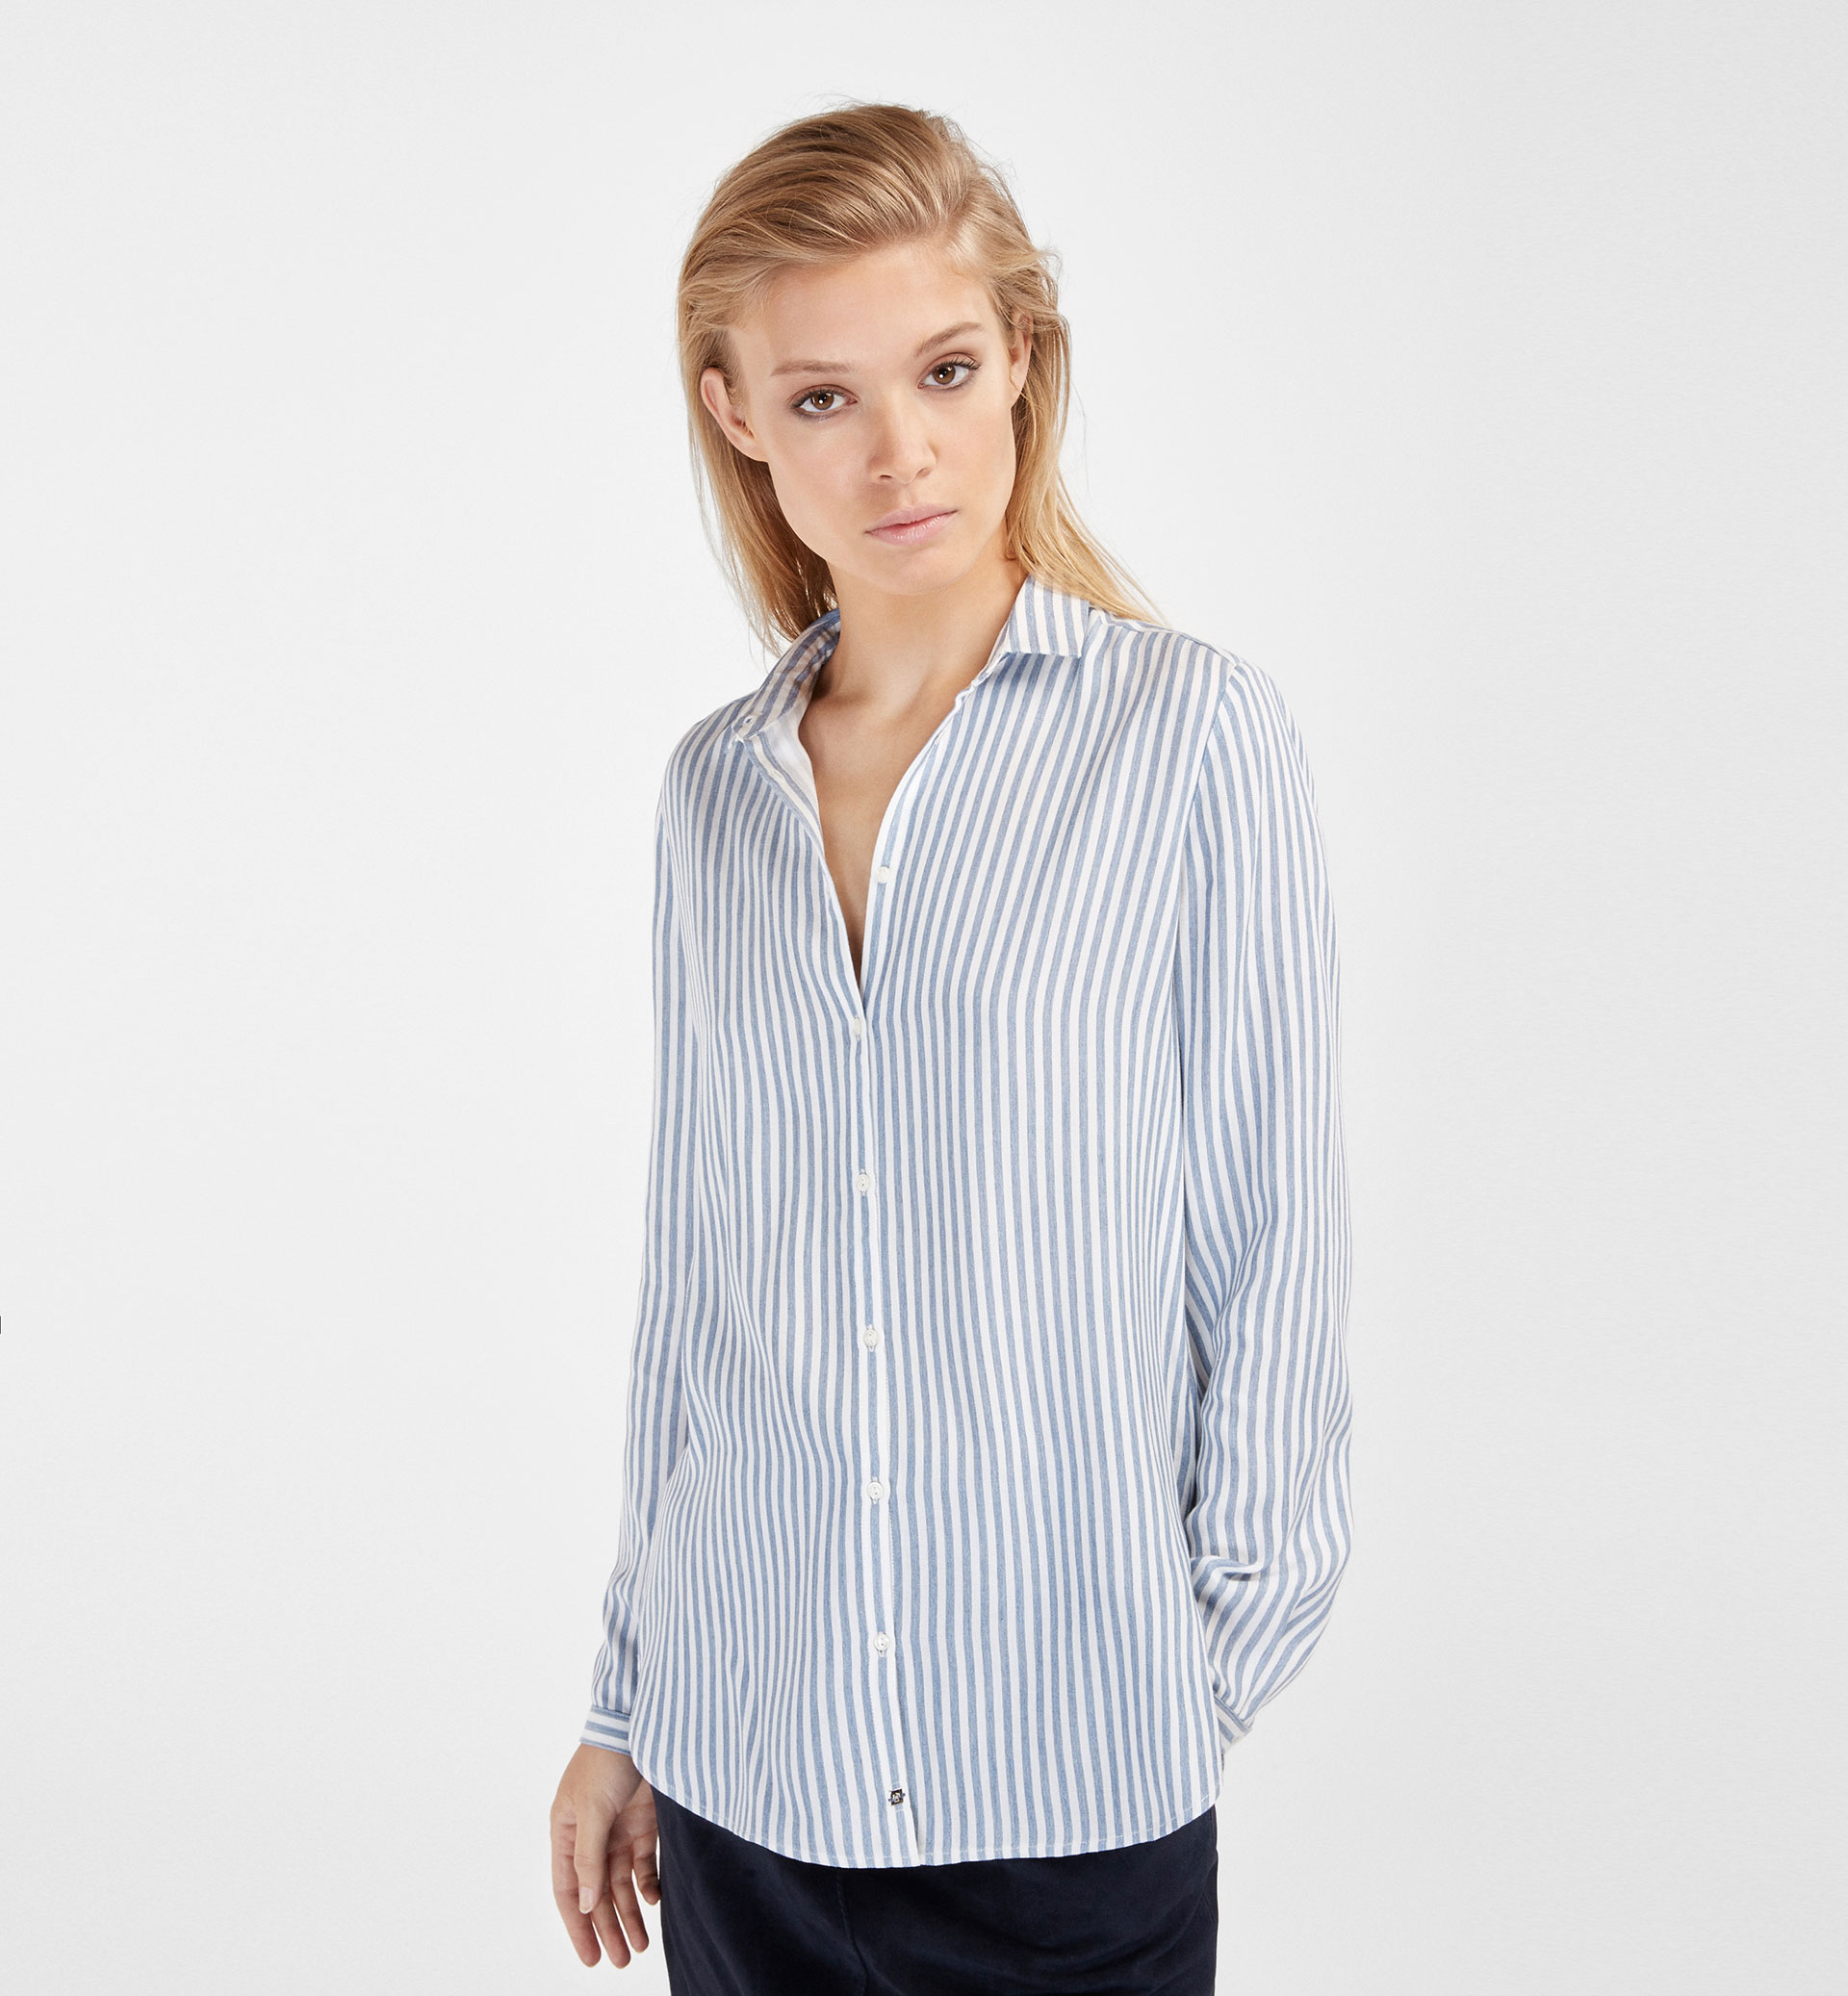 SHIRT WITH VERTICAL STRIPES